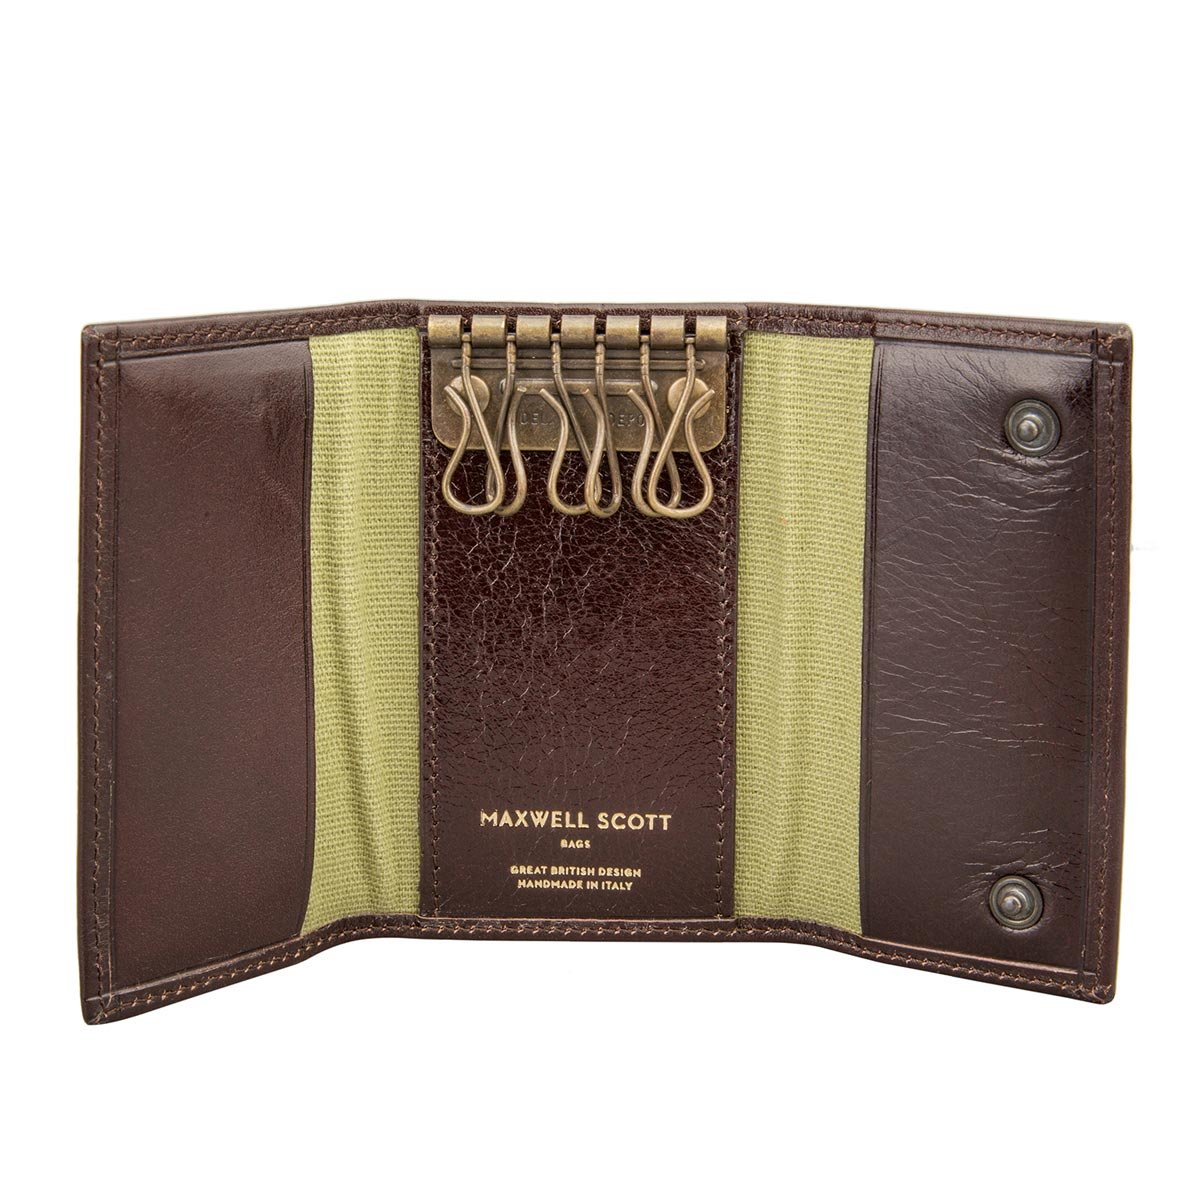 Maxwell Scott Personalized Luxury Brown Leather Key Case Wallet - One Size (The Lapo)